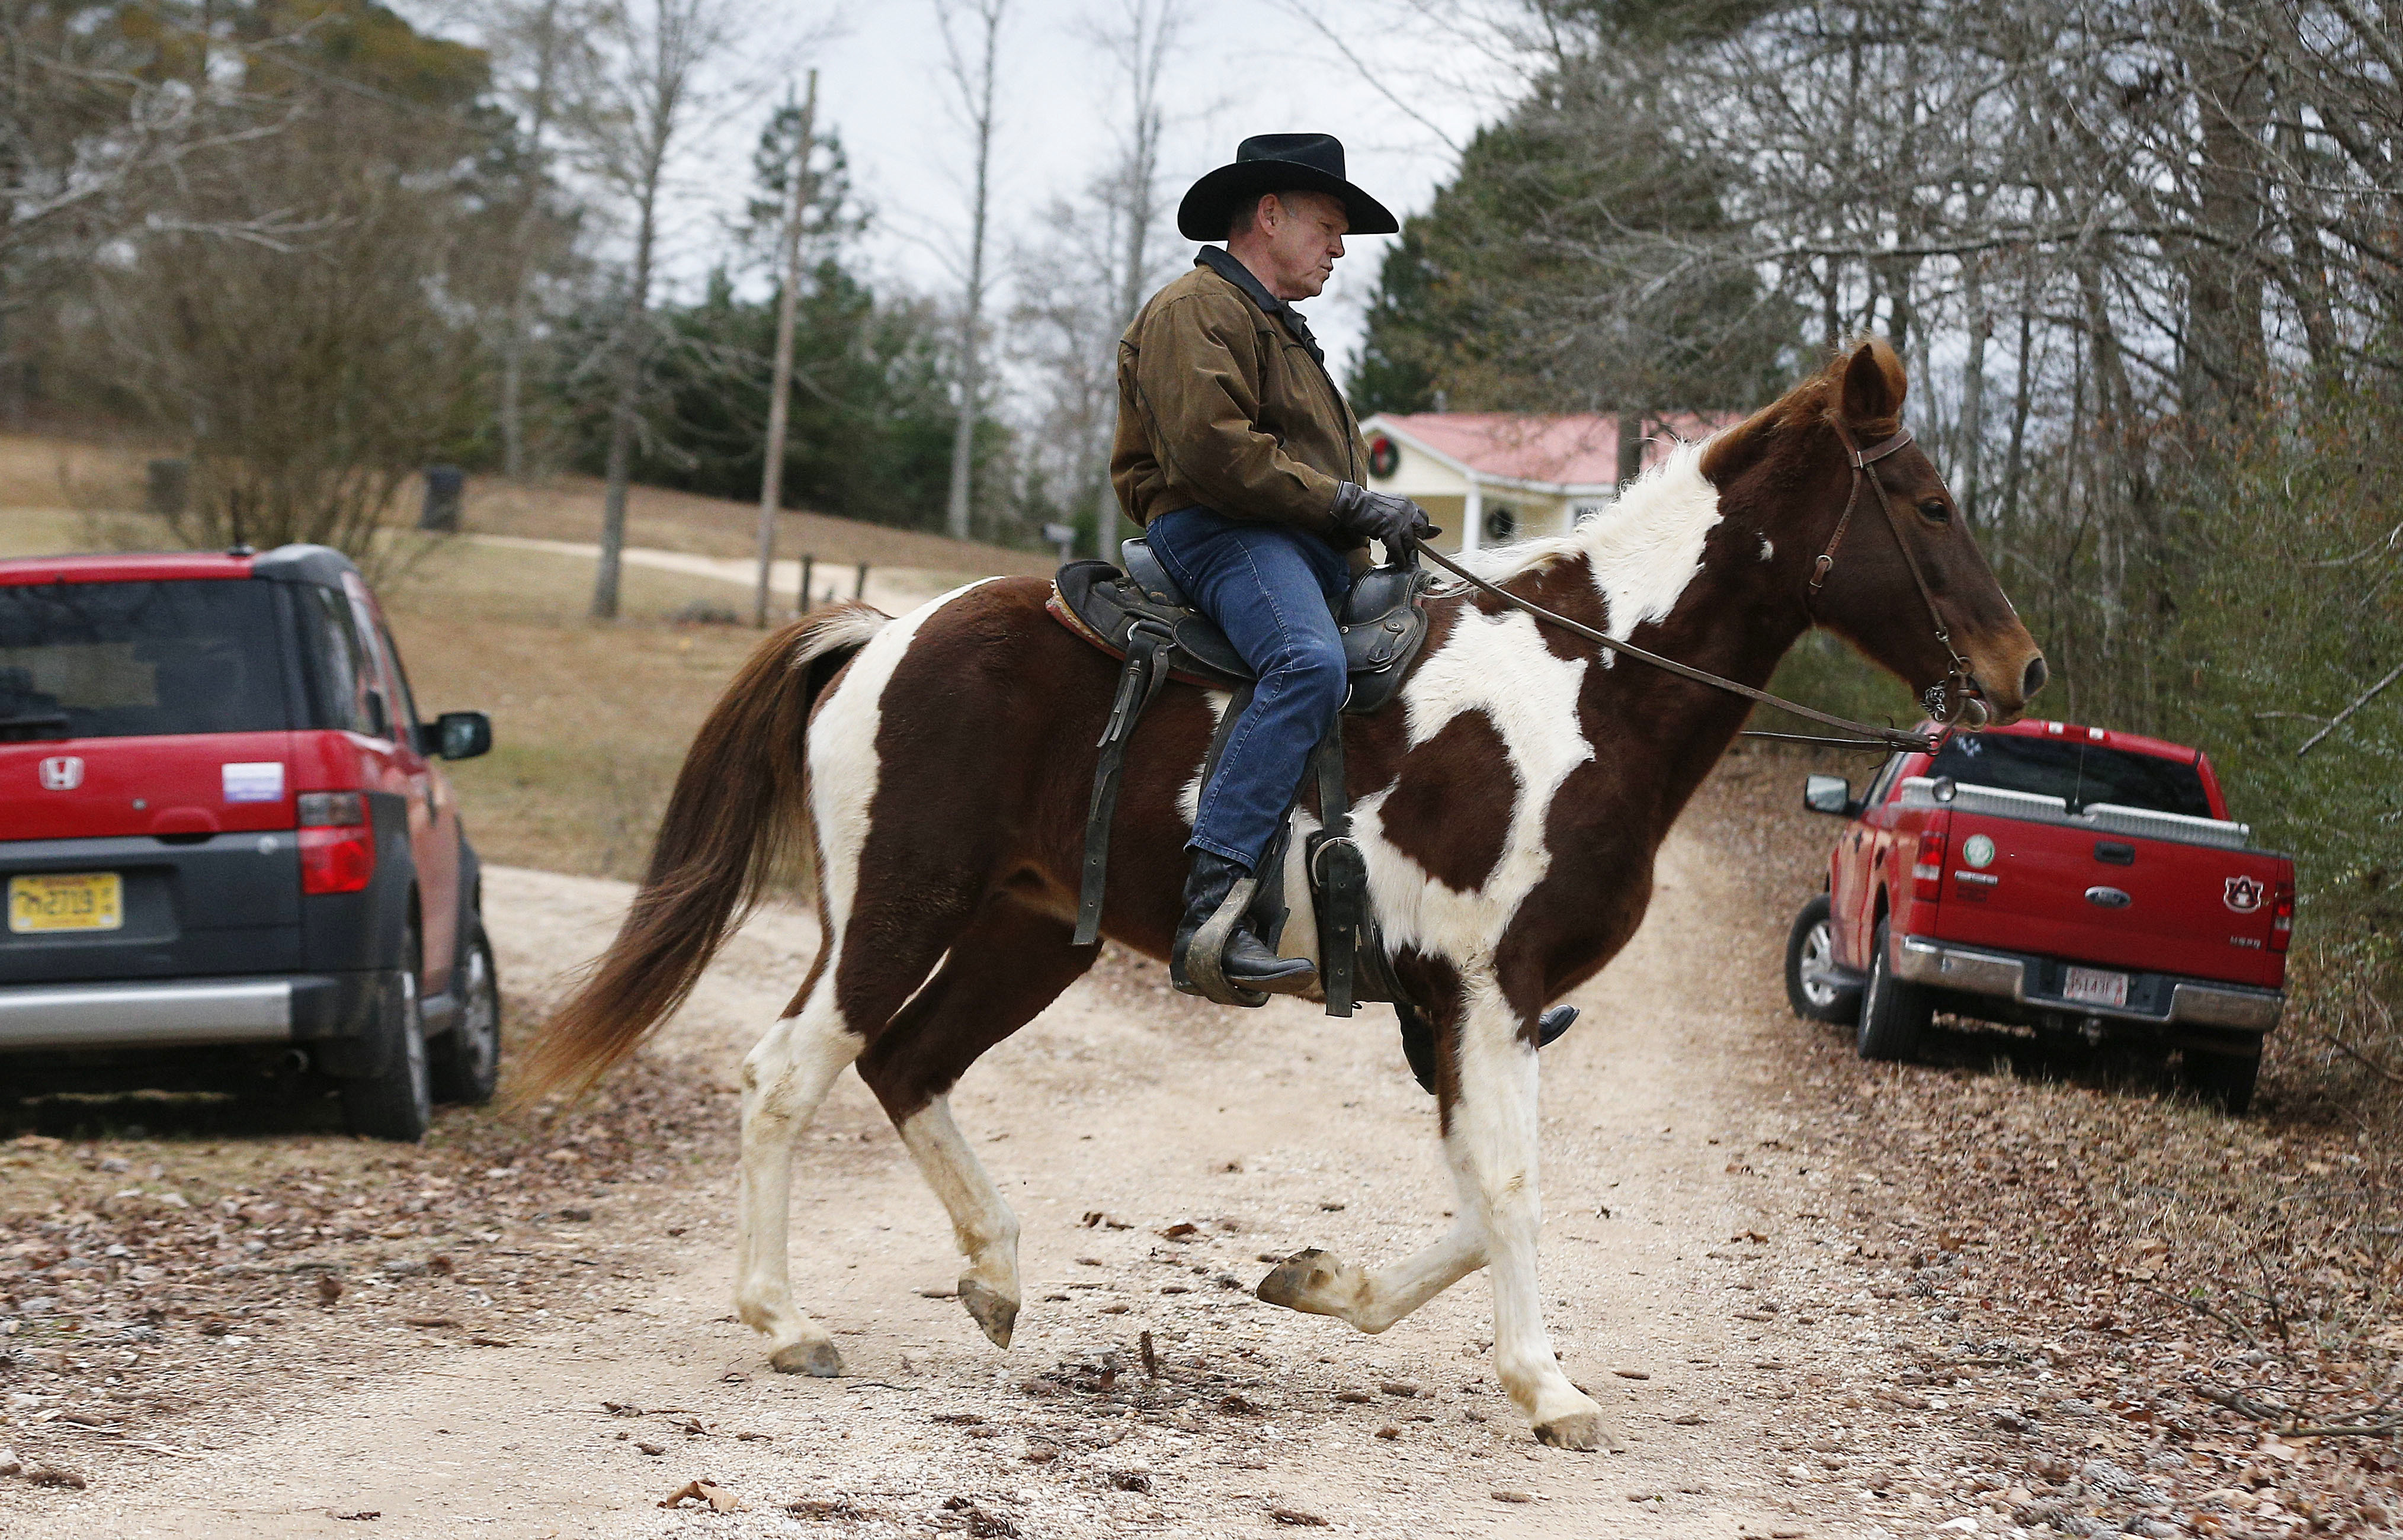 U.S. Senate Republican candidate Roy Moore rides a horse to vote, Tuesday, Dec. 12, 2017, in Gallant, Ala.